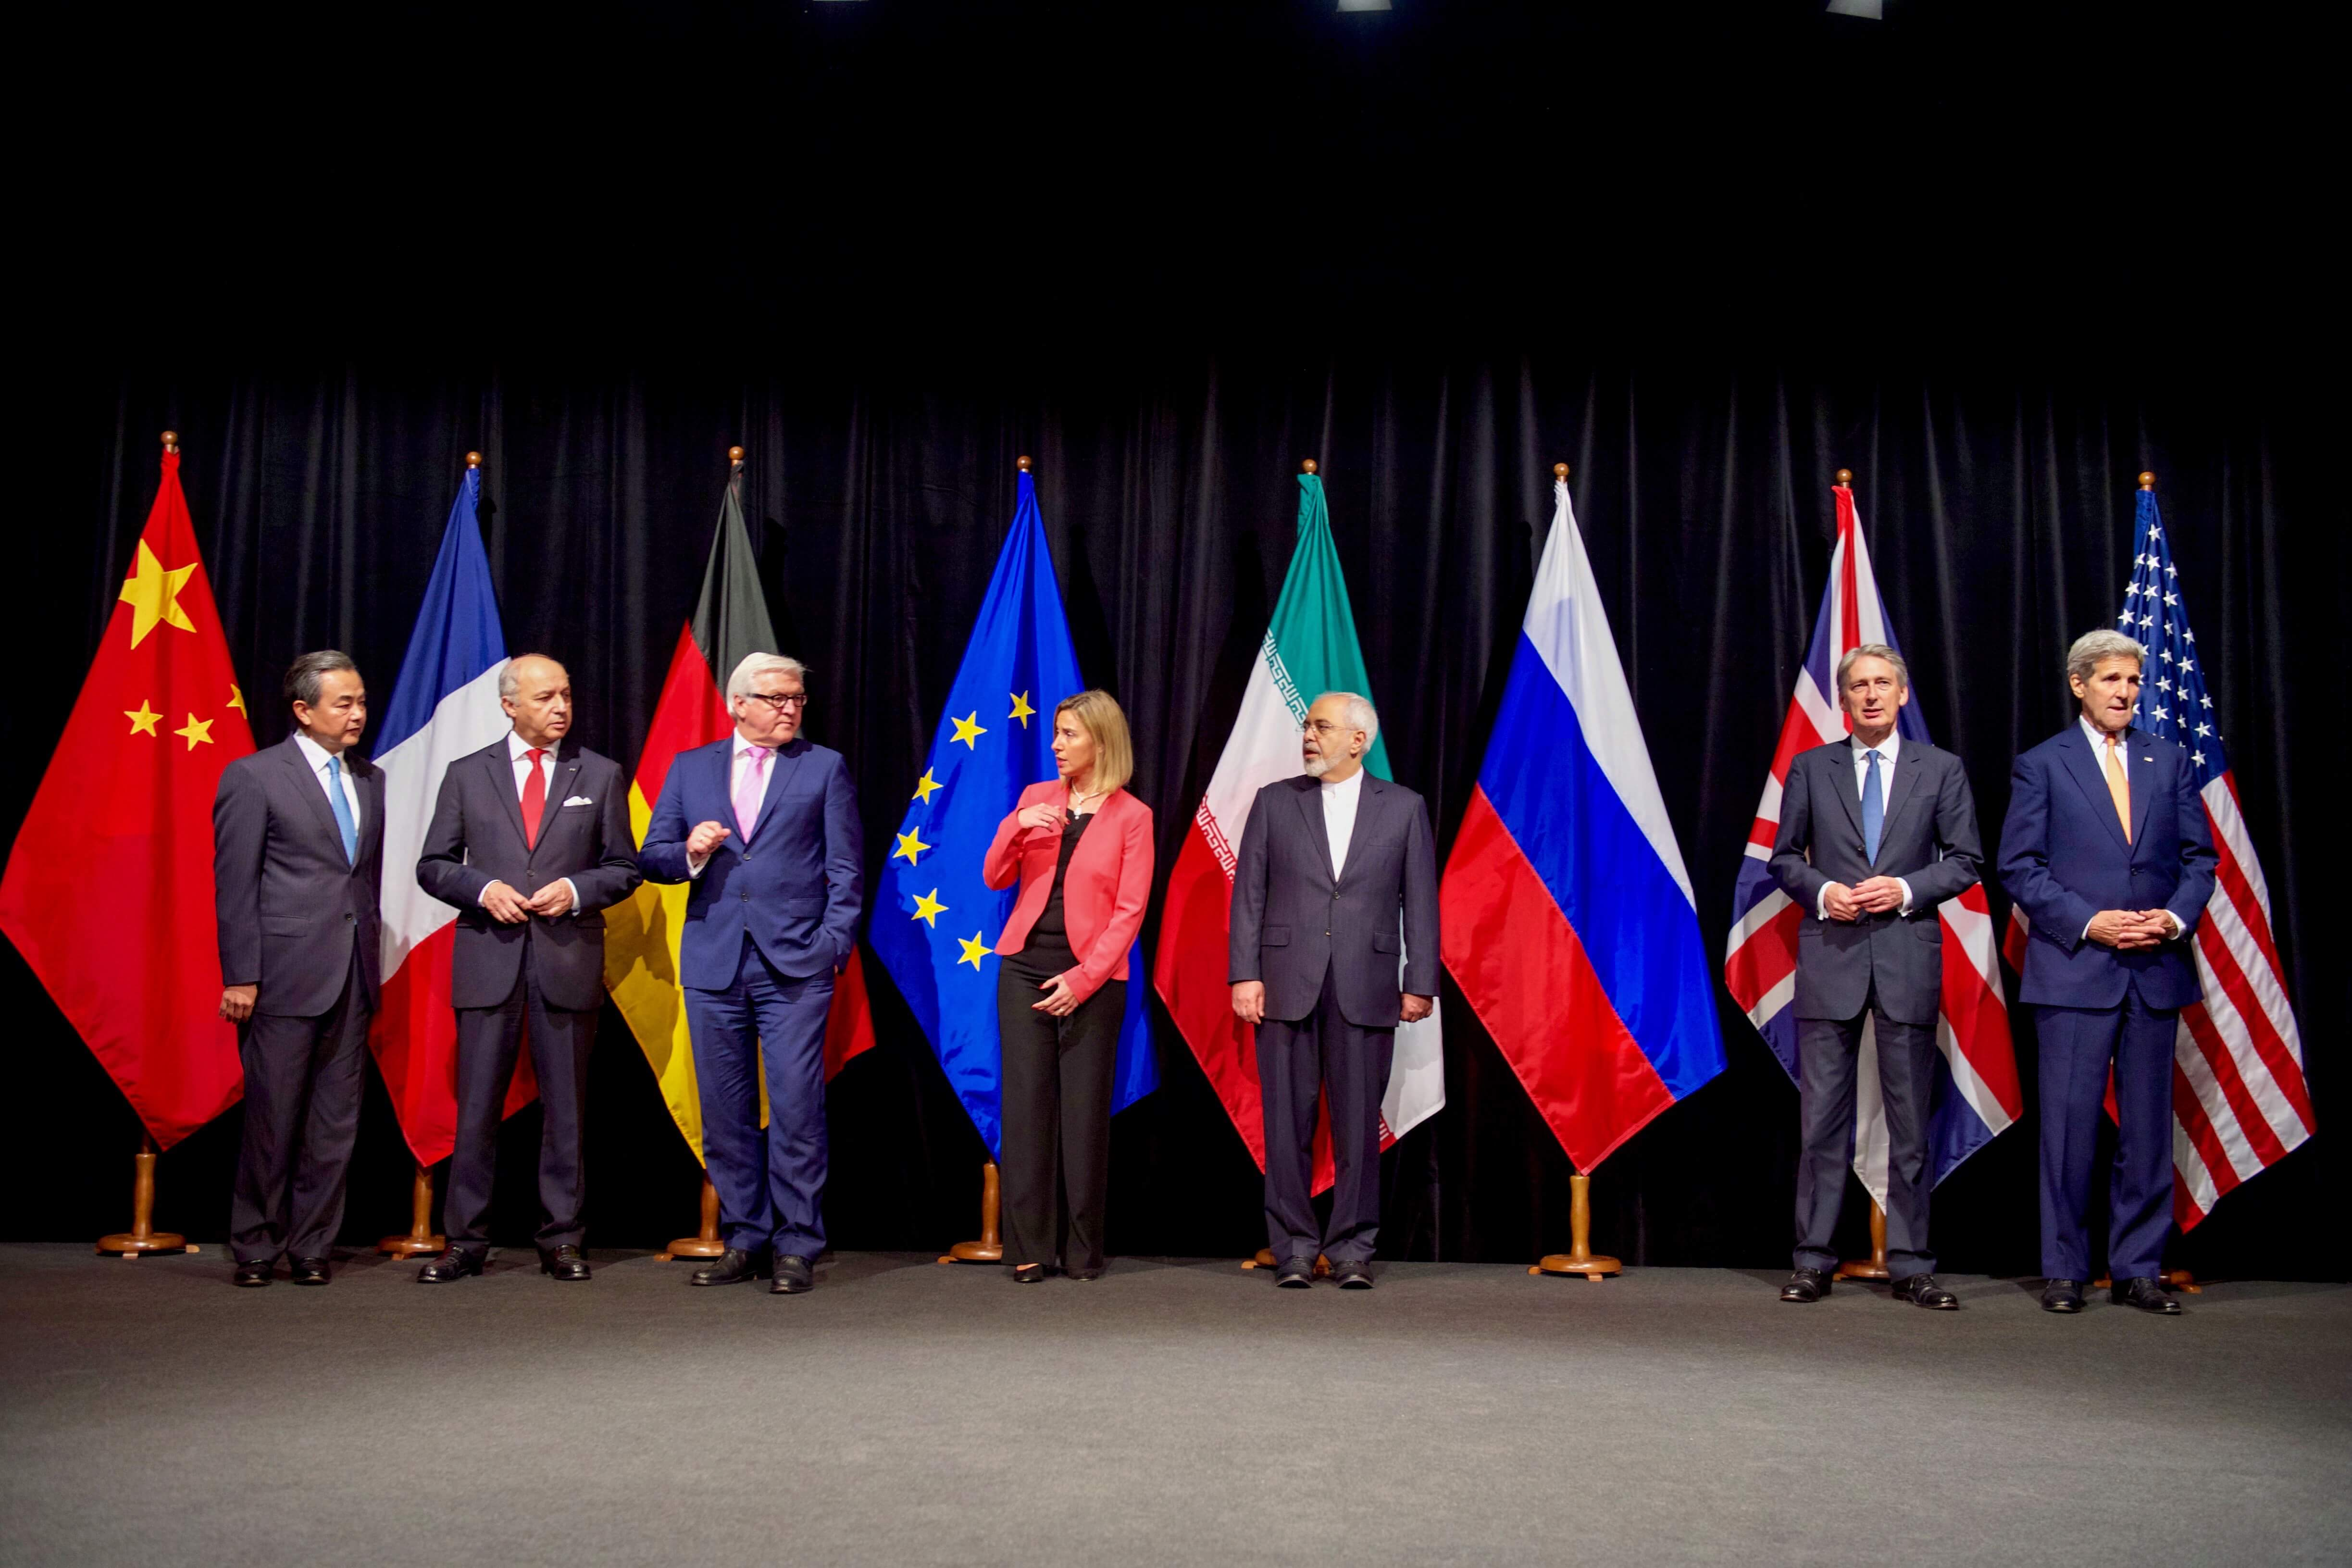 Secretary Kerry posed with his fellow E.U., P5+1, and Iranian counterparts in Vienna, Austria, on July 14 2015 after the announcing of the agreement with Iranian.